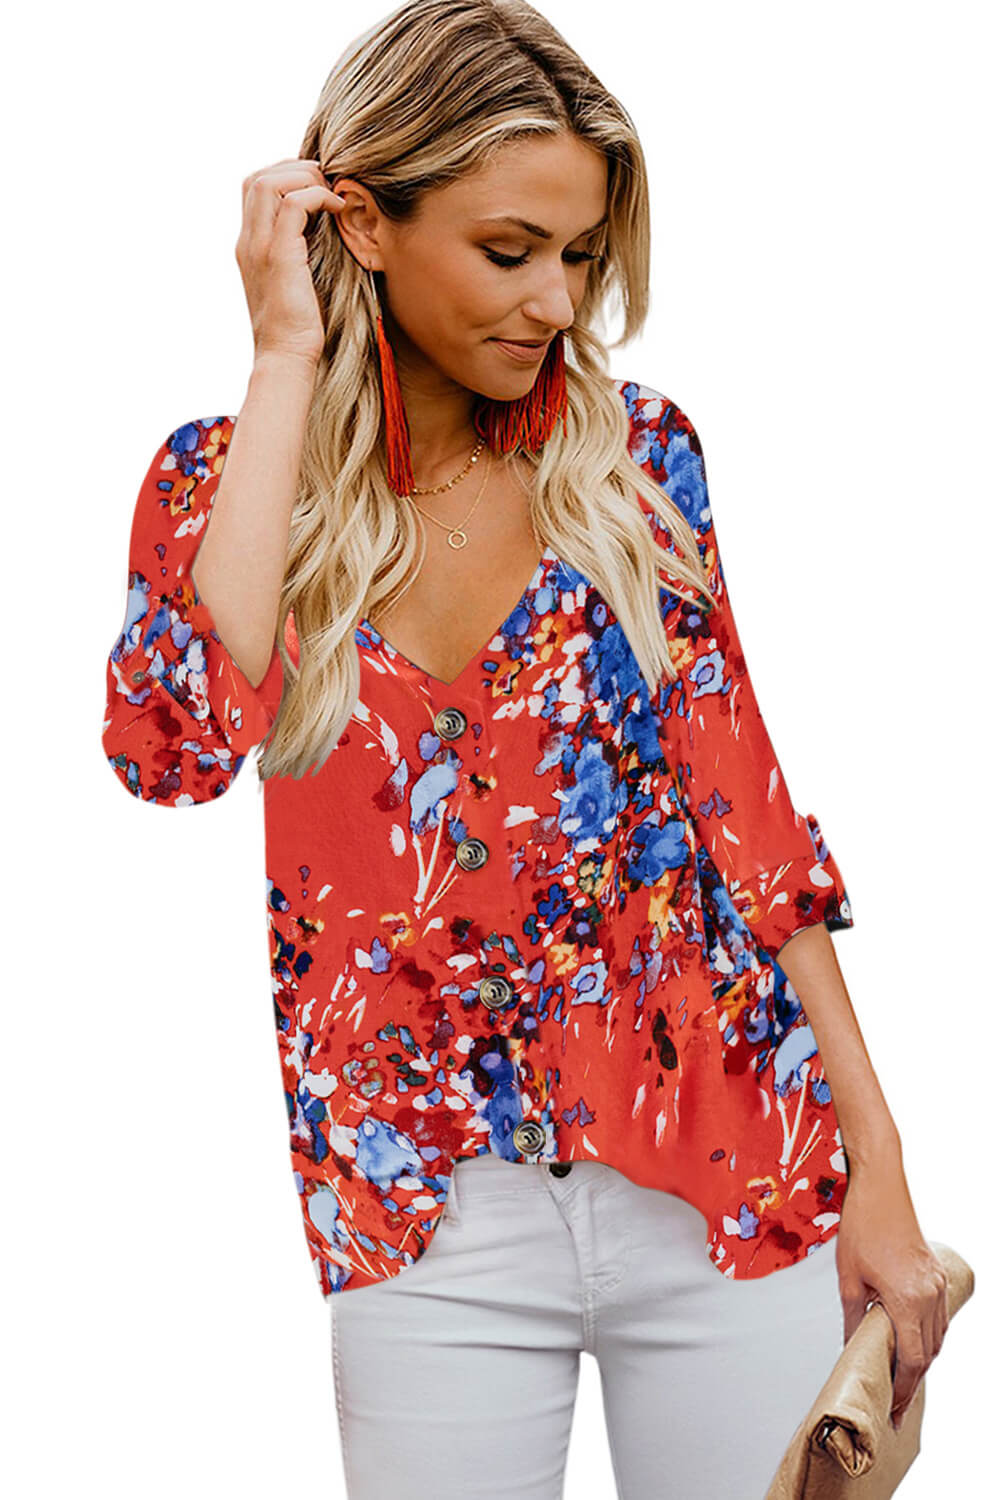 Orange V Neck Buttoned Floral Print Blouse Blouses & Shirts Discount Designer Fashion Clothes Shoes Bags Women Men Kids Children Black Owned Business